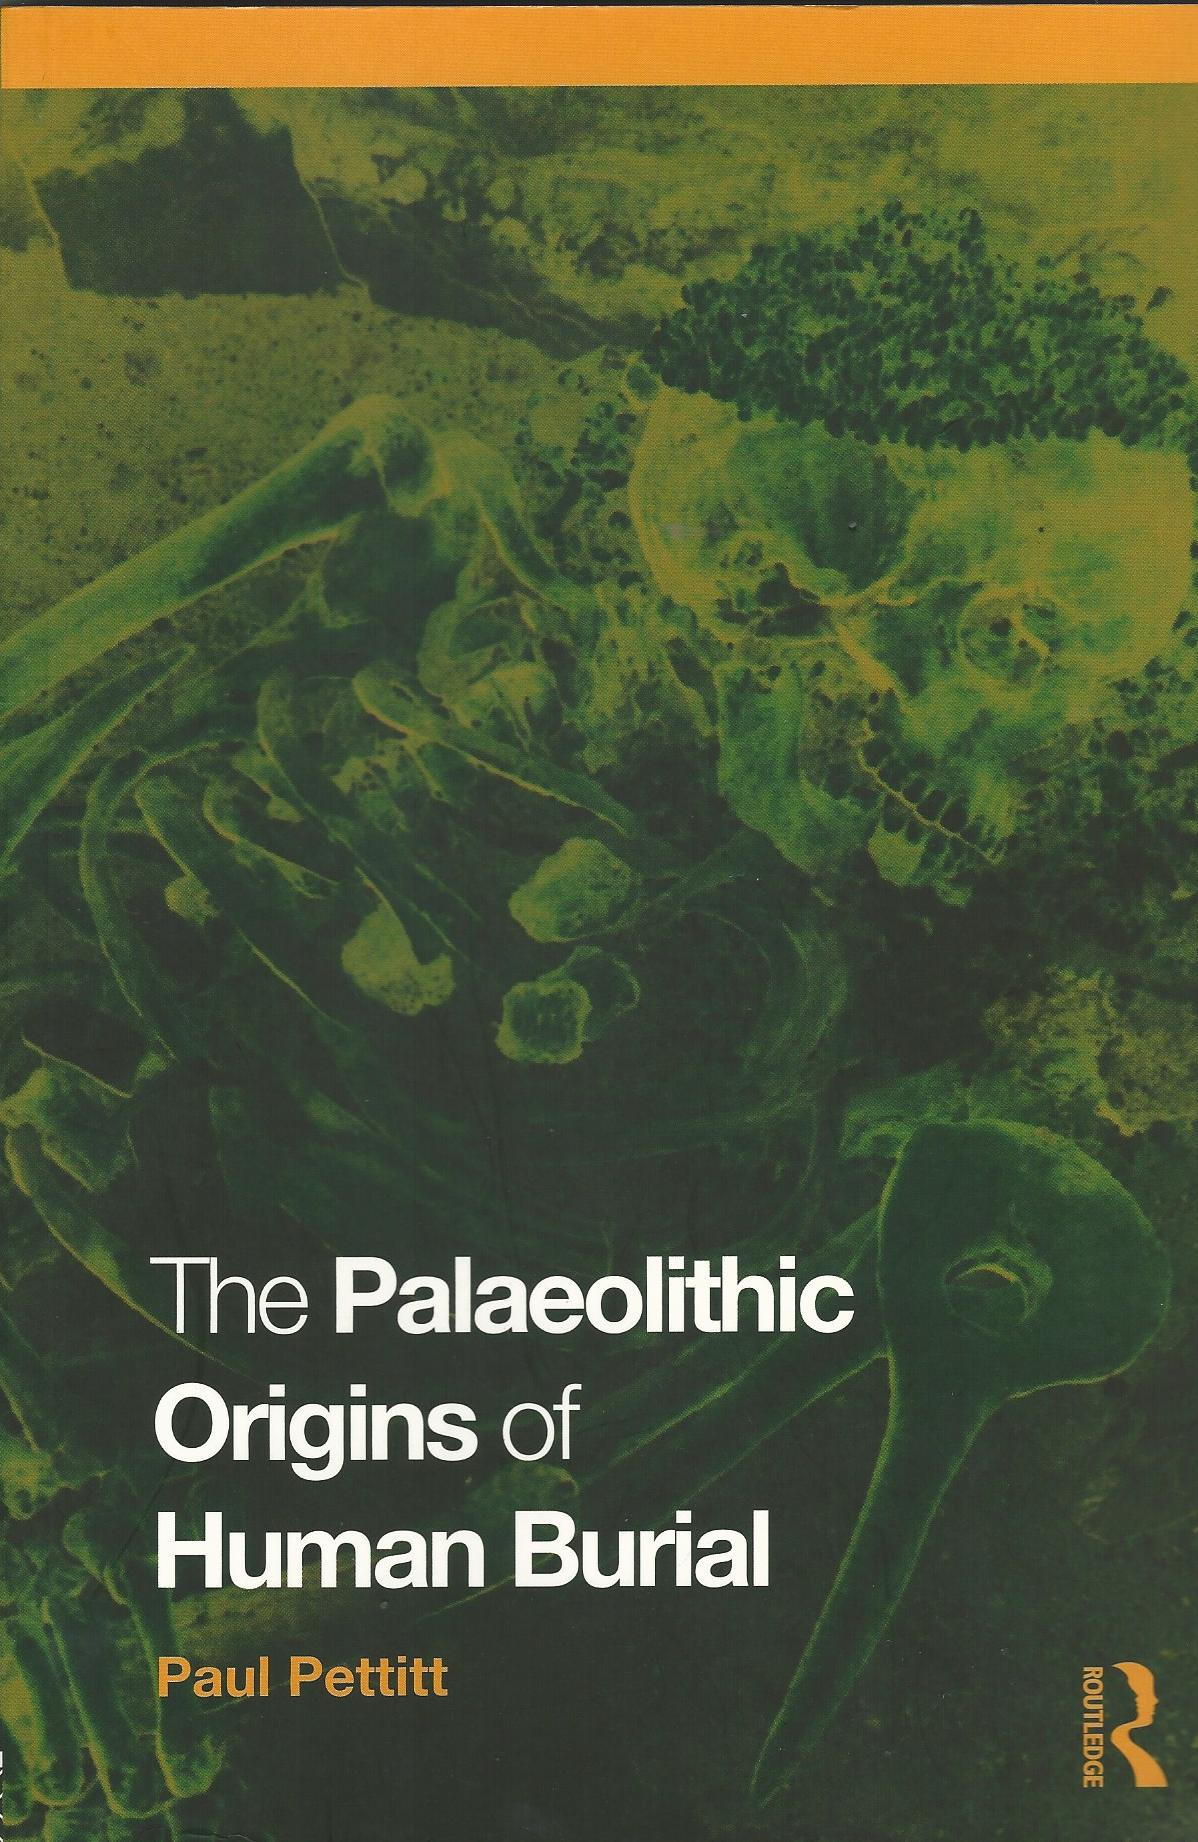 Image for The Palaeolithic Origins of Human Burial